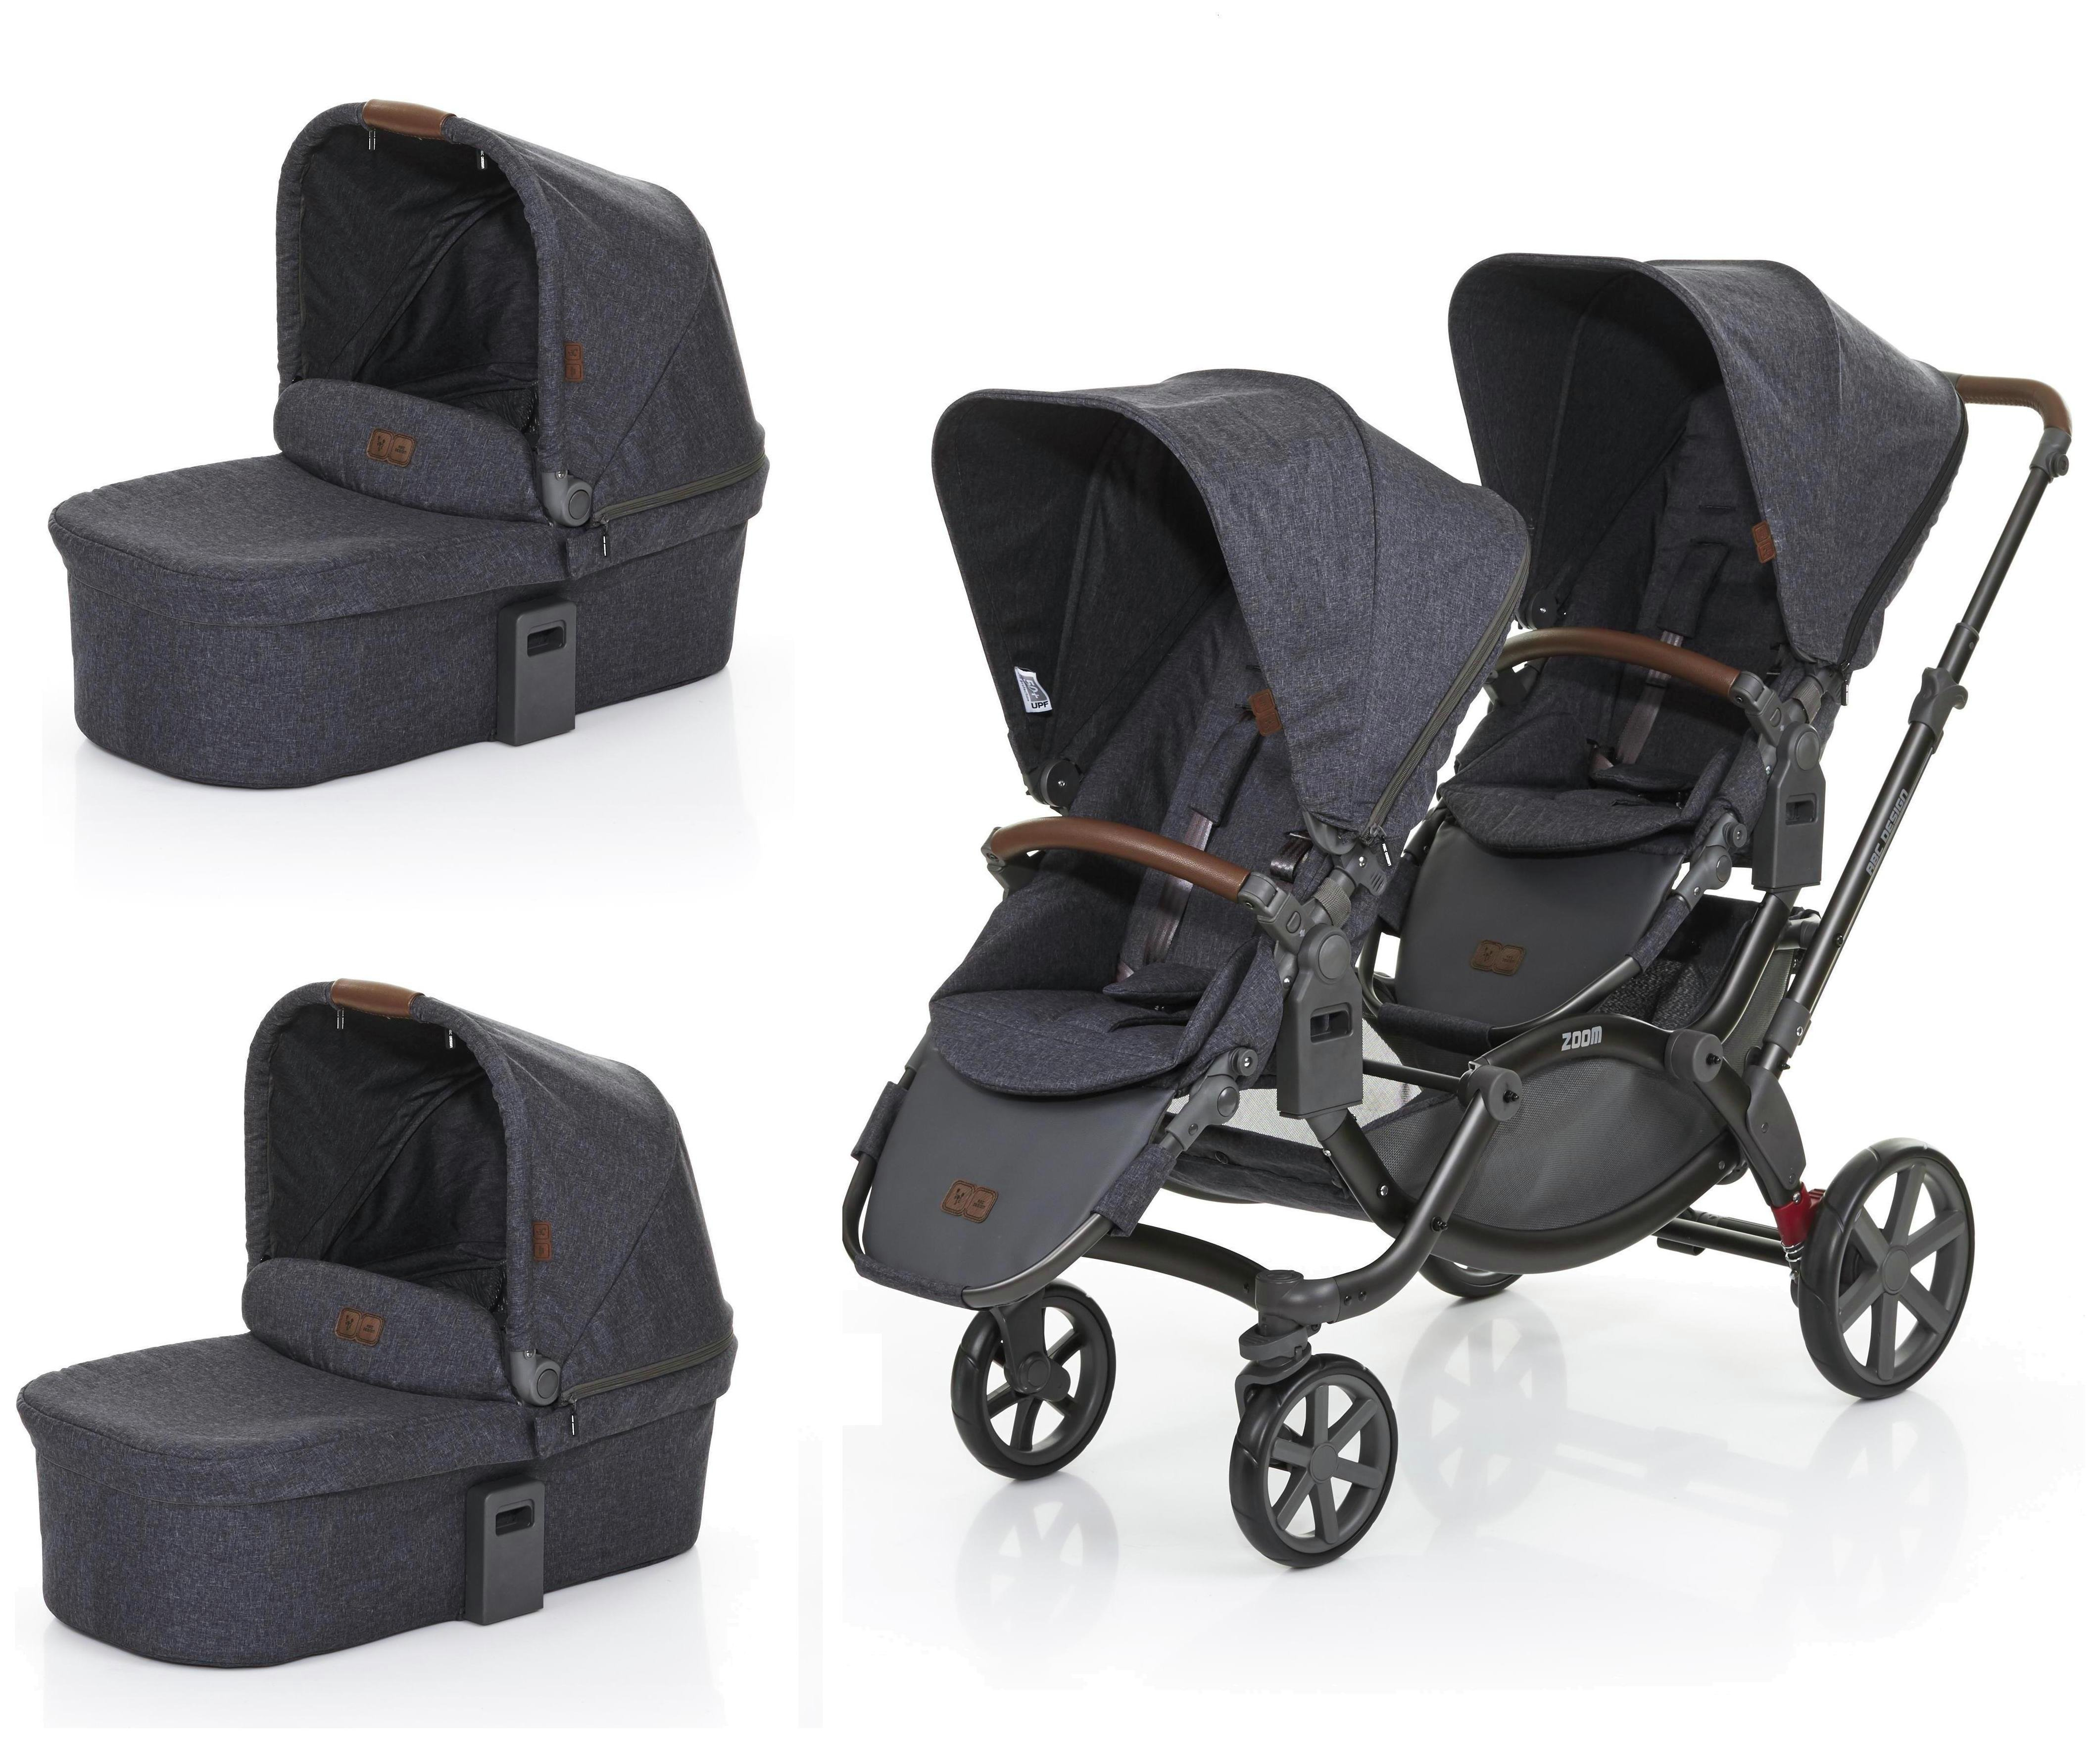 Image of ABC Design Zoom Tandem & 2 Carrycots - Street